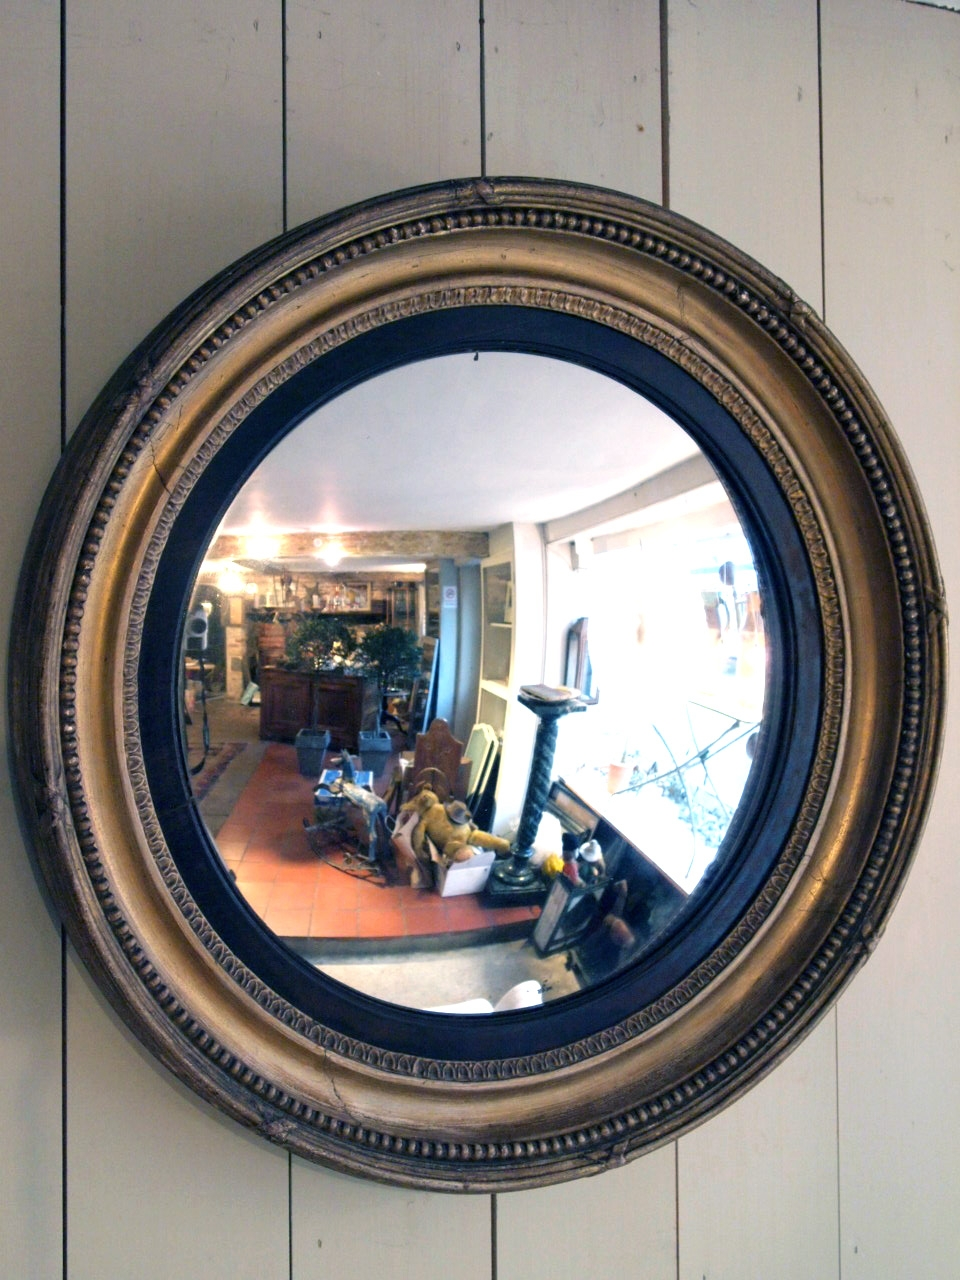 Antique Round Convex Mirror Puckhaber Decorative Antiques In Convex Mirror Decorative (Image 3 of 15)